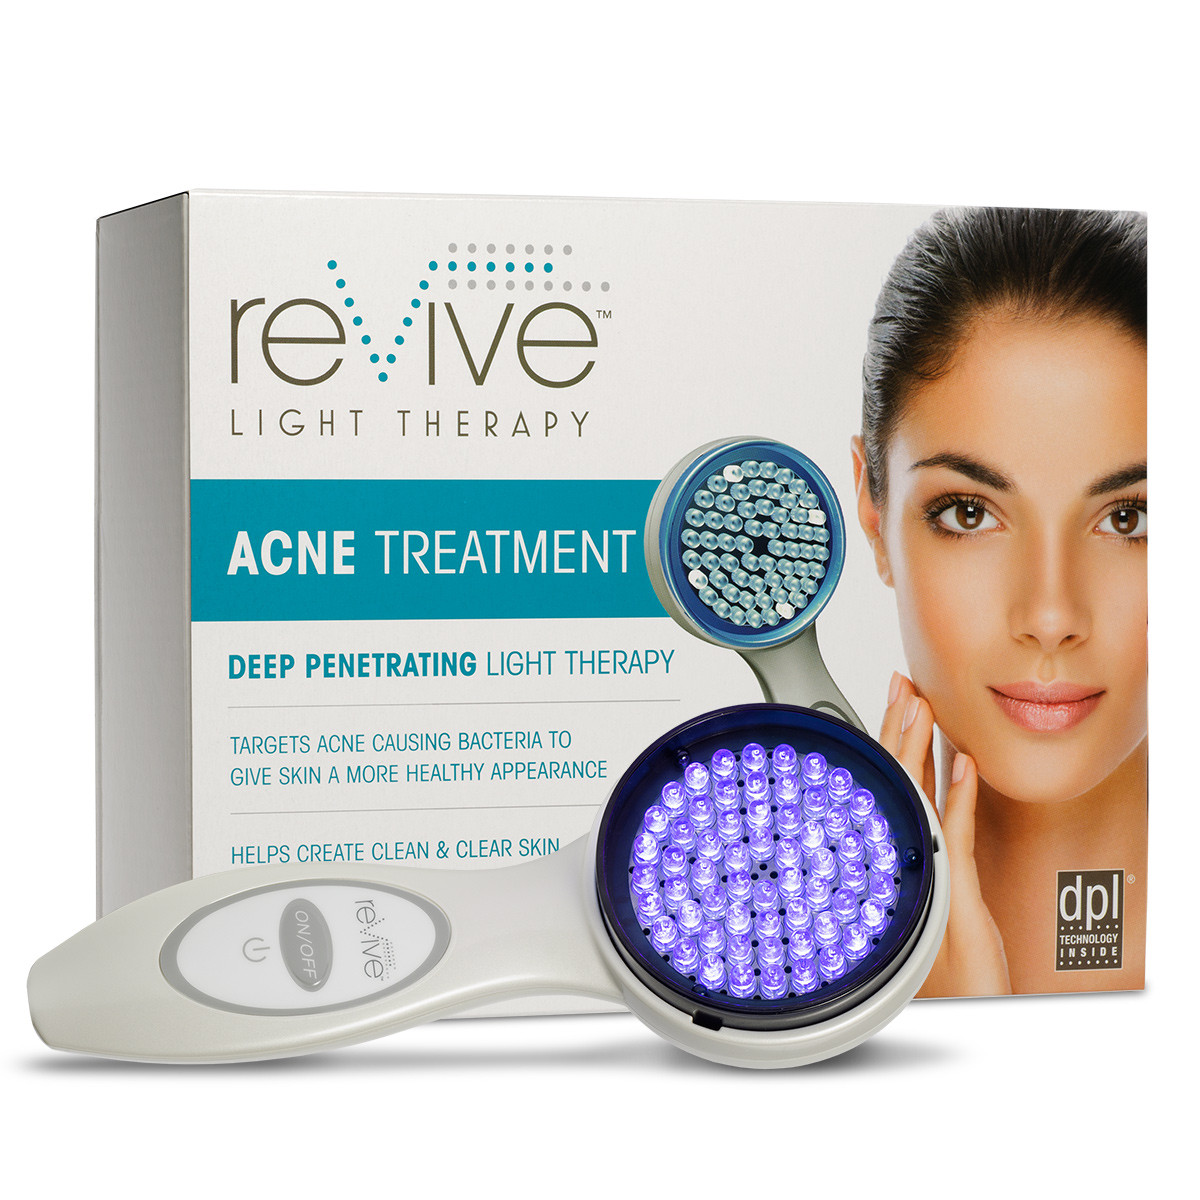 Revive Light Therapy